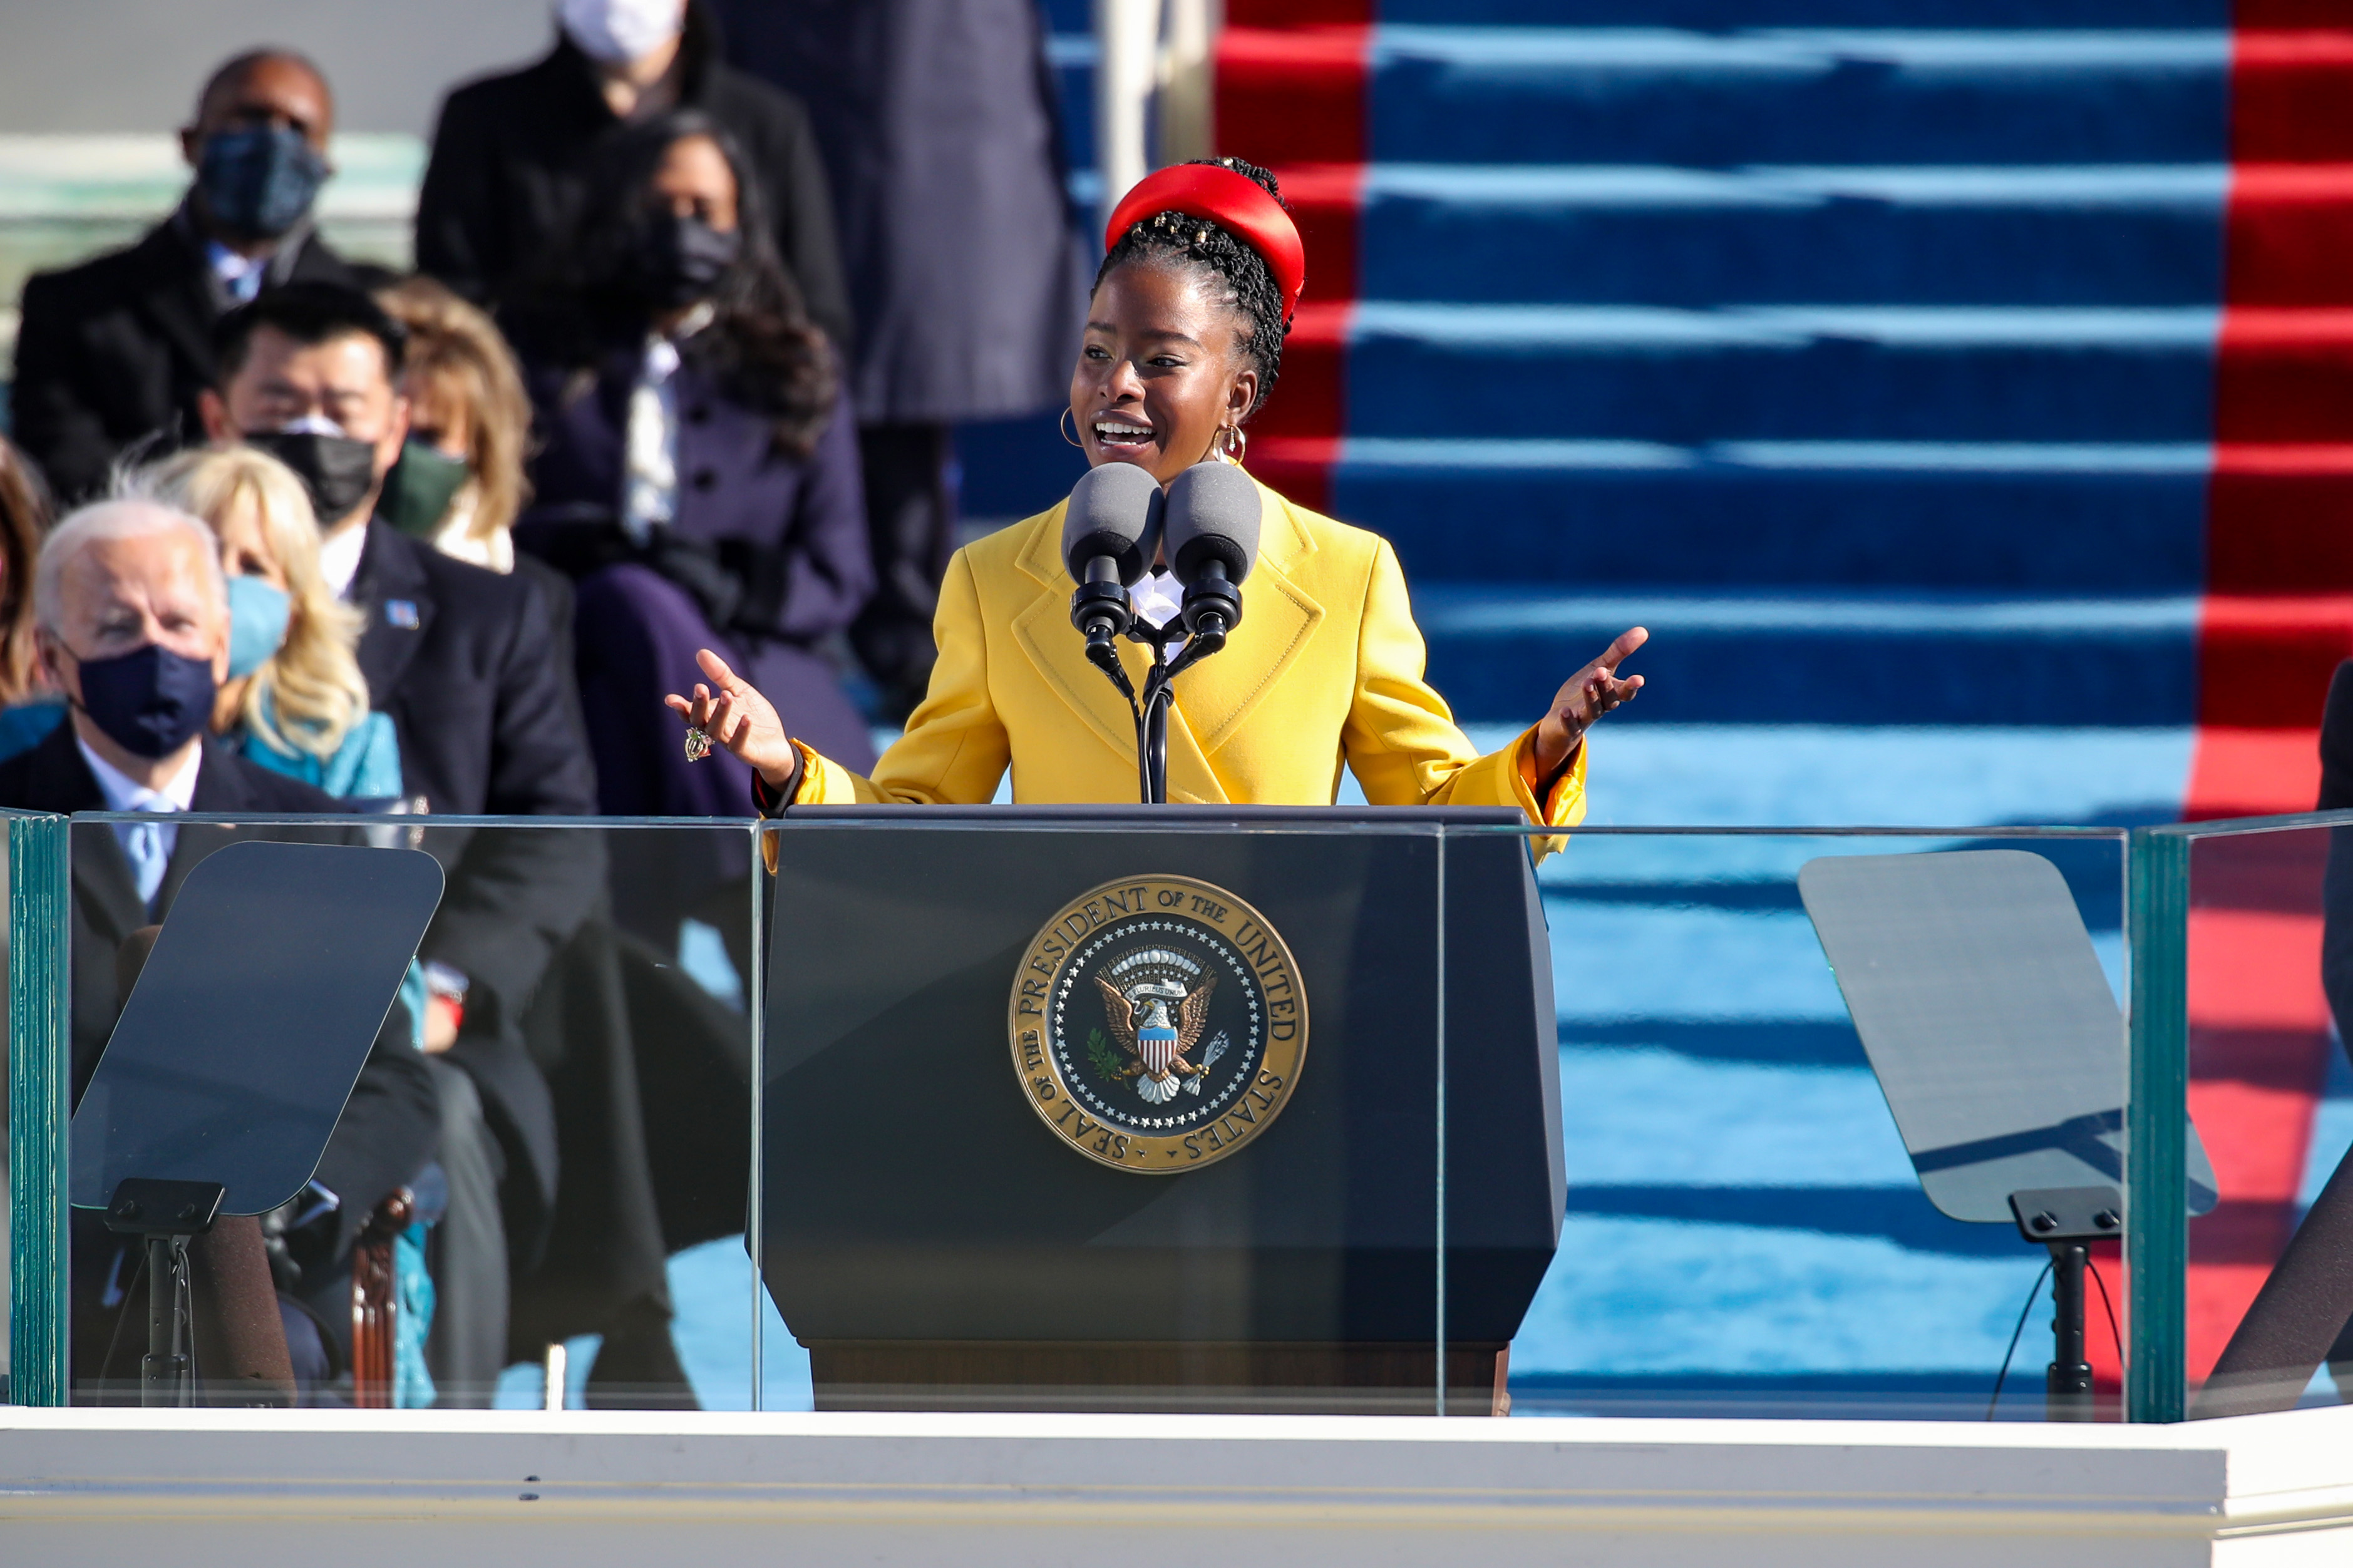 WASHINGTON, DC - JANUARY 20: Youth Poet Laureate Amanda Gorman speaks at the inauguration of U.S. President Joe Biden on the West Front of the U.S. Capitol on January 20, 2021 in Washington, DC. During today's inauguration ceremony Joe Biden becomes the 46th president of the United States. (Photo by Rob Carr/Getty Images) ORG XMIT: 775612666